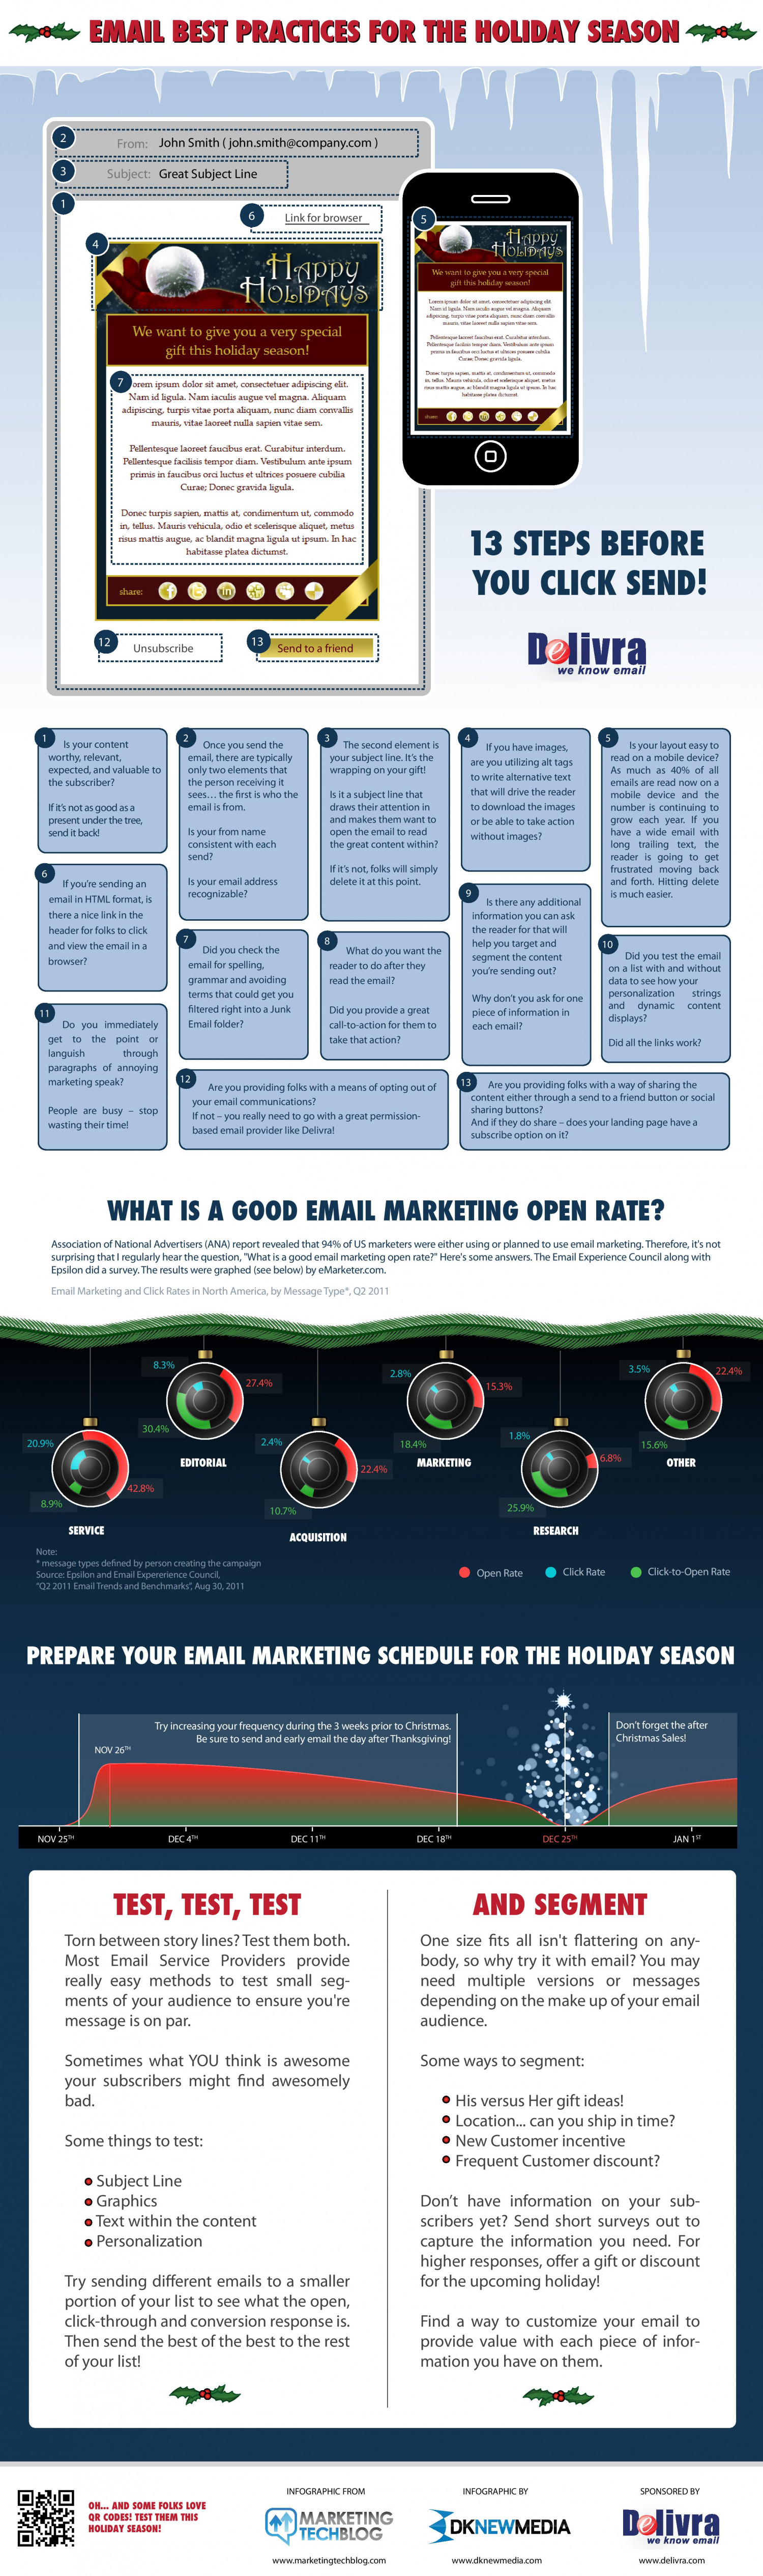 Email Marketing Best Practices for the Holiday Season  Infographic